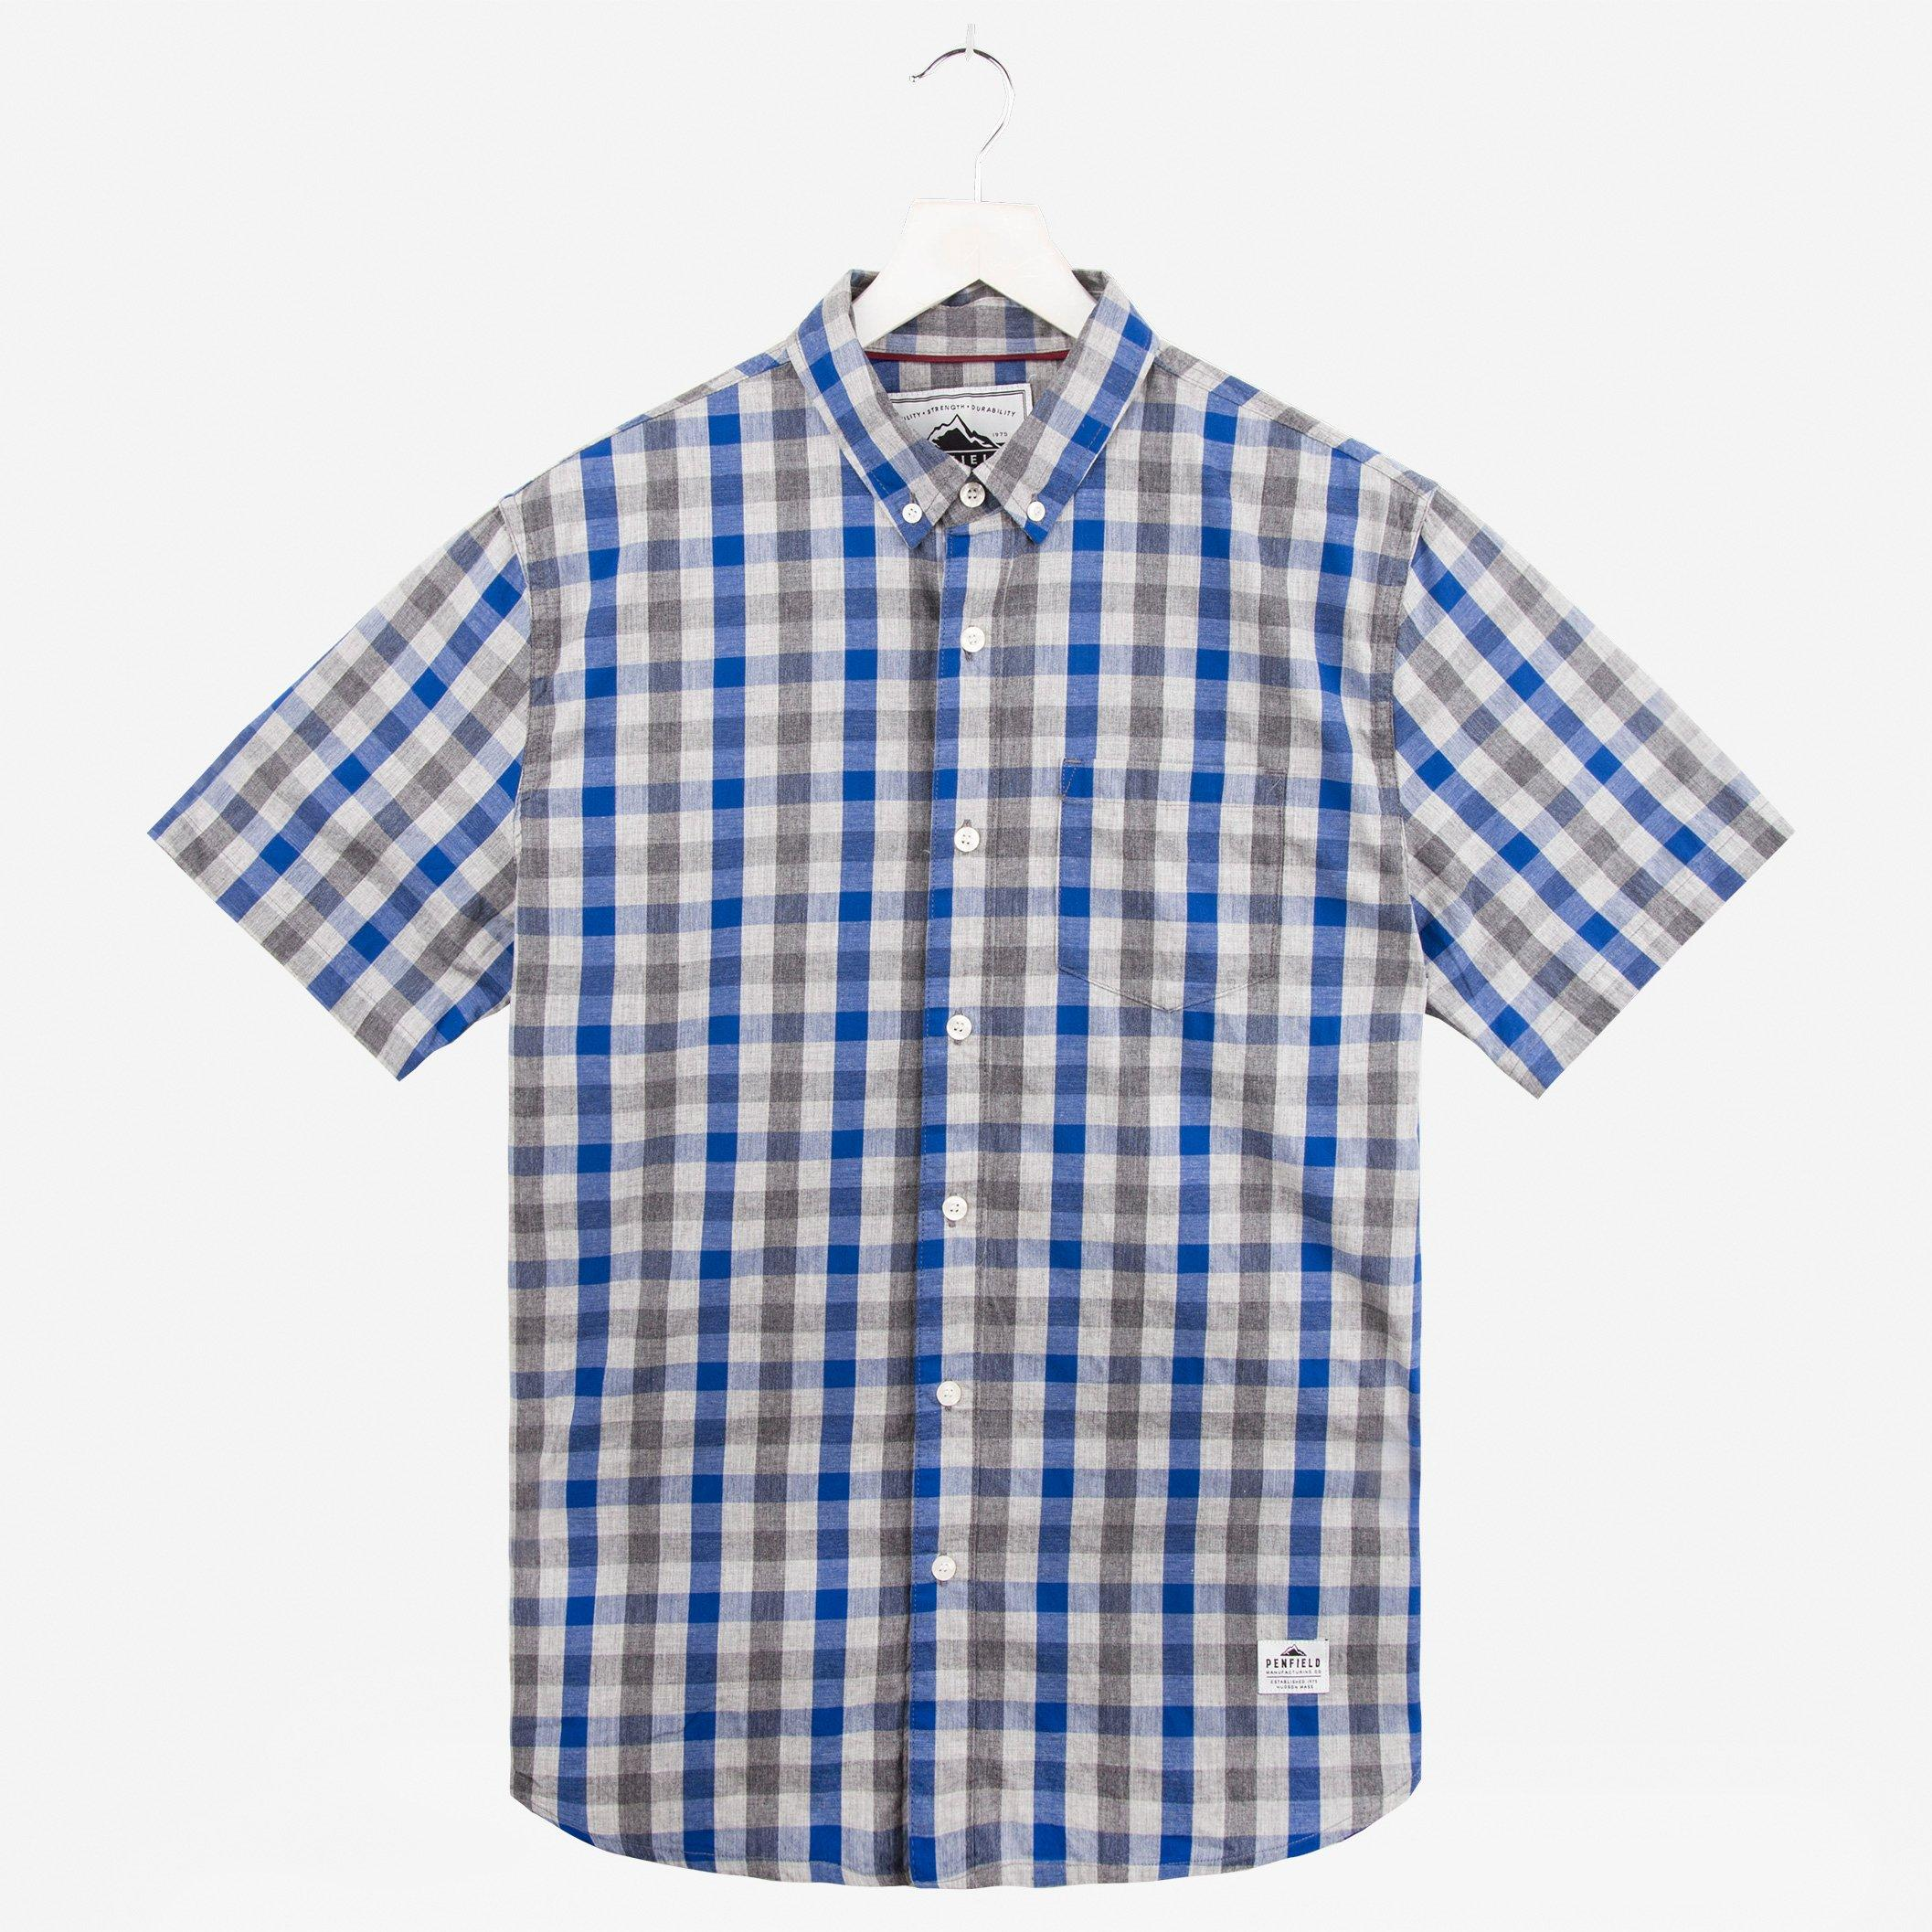 Penfield Giddings Check Shirt